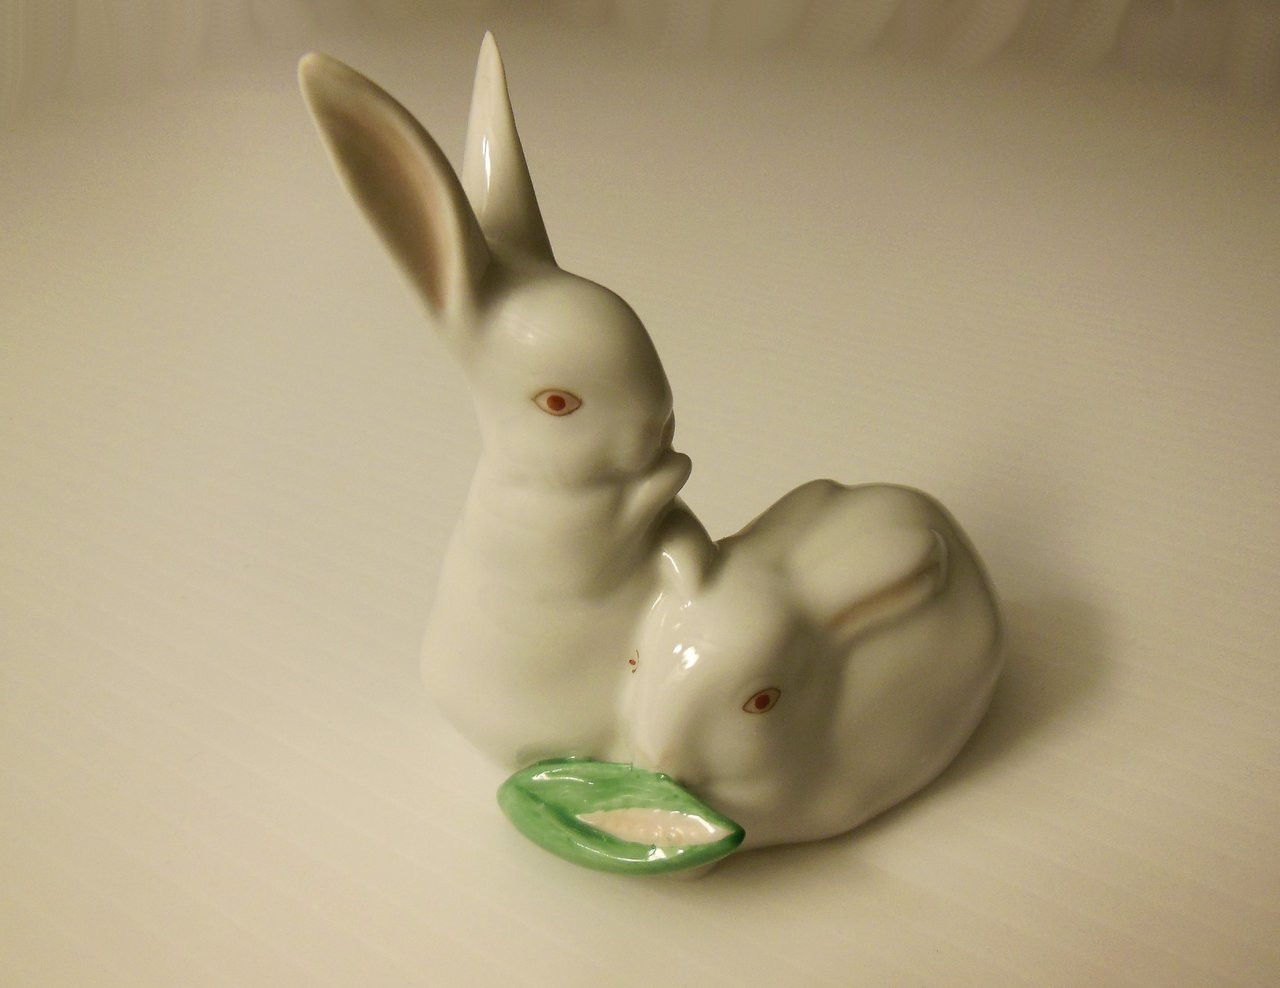 Herend Hungary Easter Porcelain Figurine: White Pair of Rabbits Eating Ear of Corn